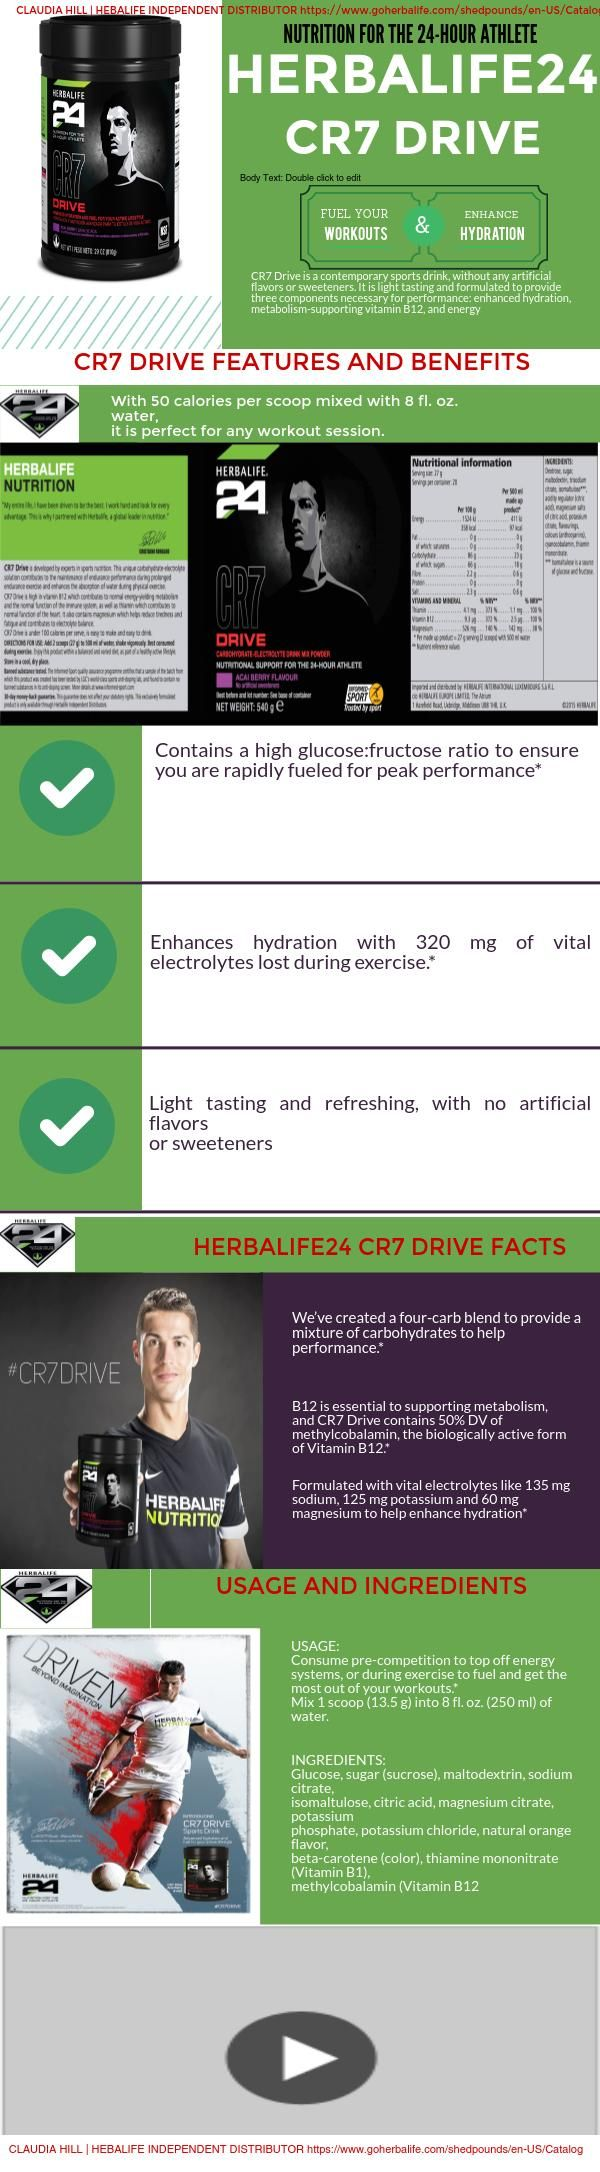 #CR7 #CR7DRIVE Infographic | Developed in close partnership with international soccer superstar Cristiano Ronaldo, CR7 Drive Rapidly fuel your workouts and enhance hydration. available at https://www.goherbalife.com/shedpounds/en-US #Herbalife24 #CR7DRIVE Cristiano Ronaldo #CR7